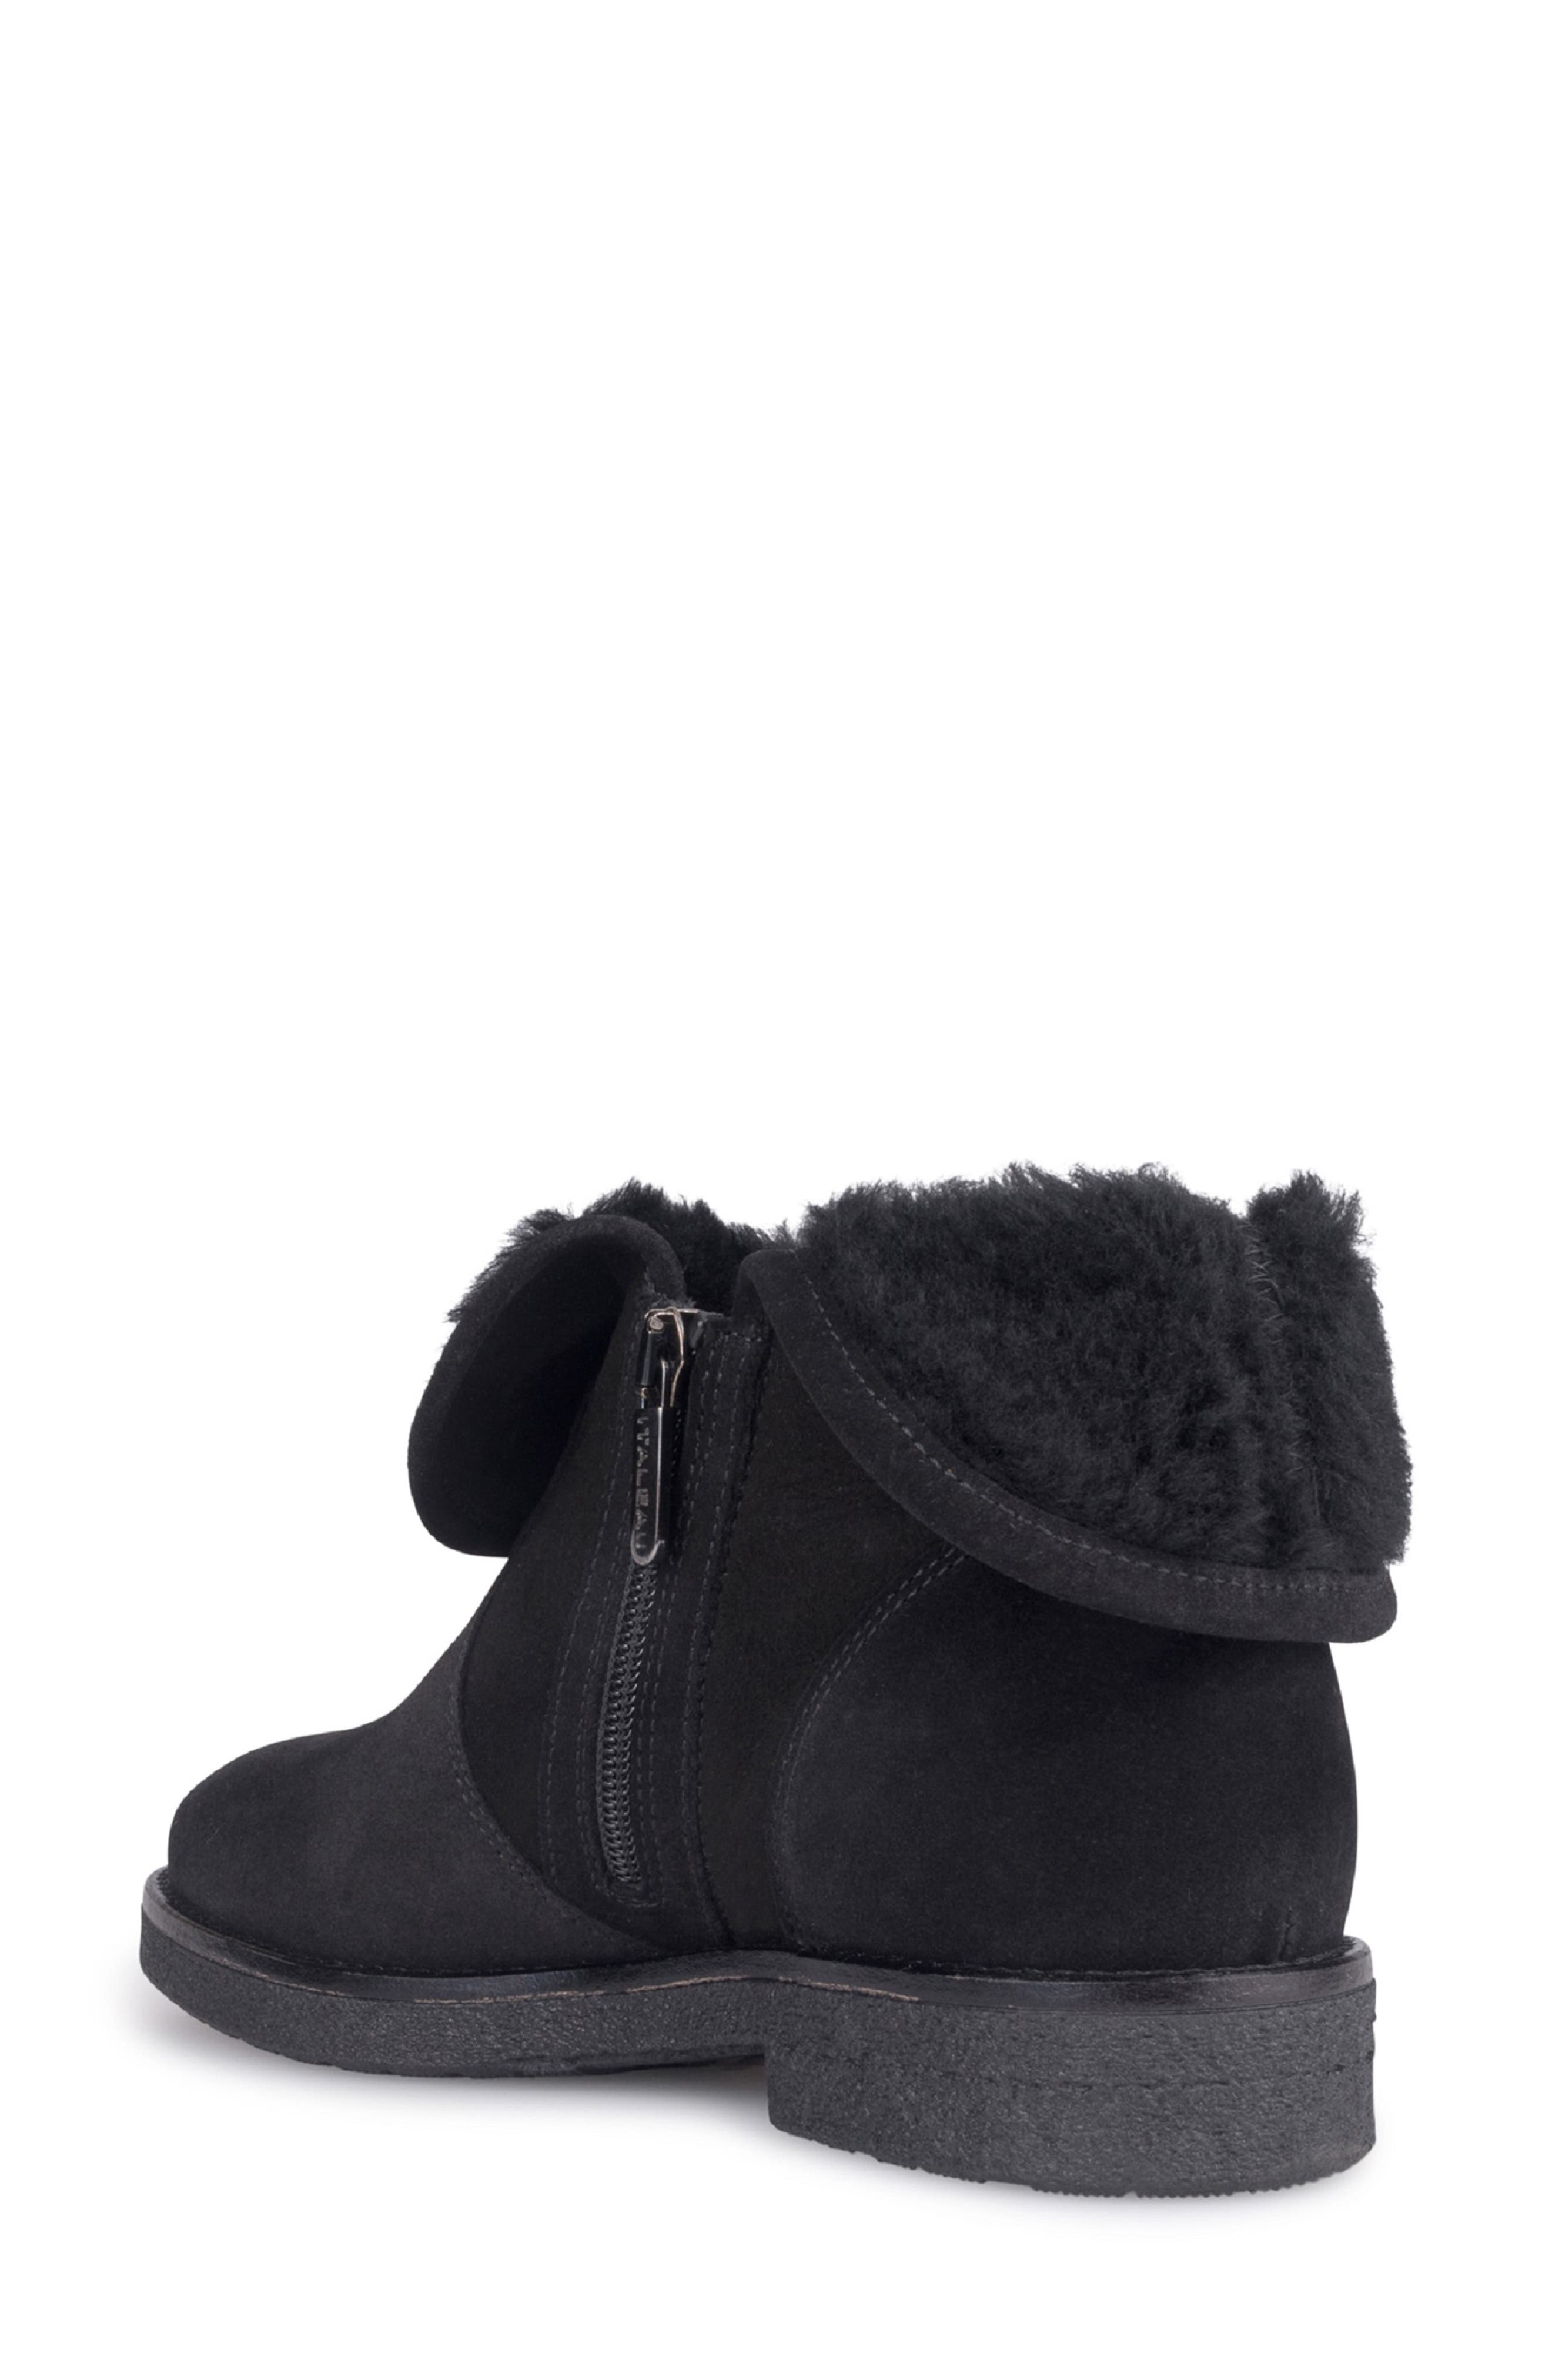 Rosie Genuine Shearling Lined Bootie,                             Alternate thumbnail 2, color,                             NERO